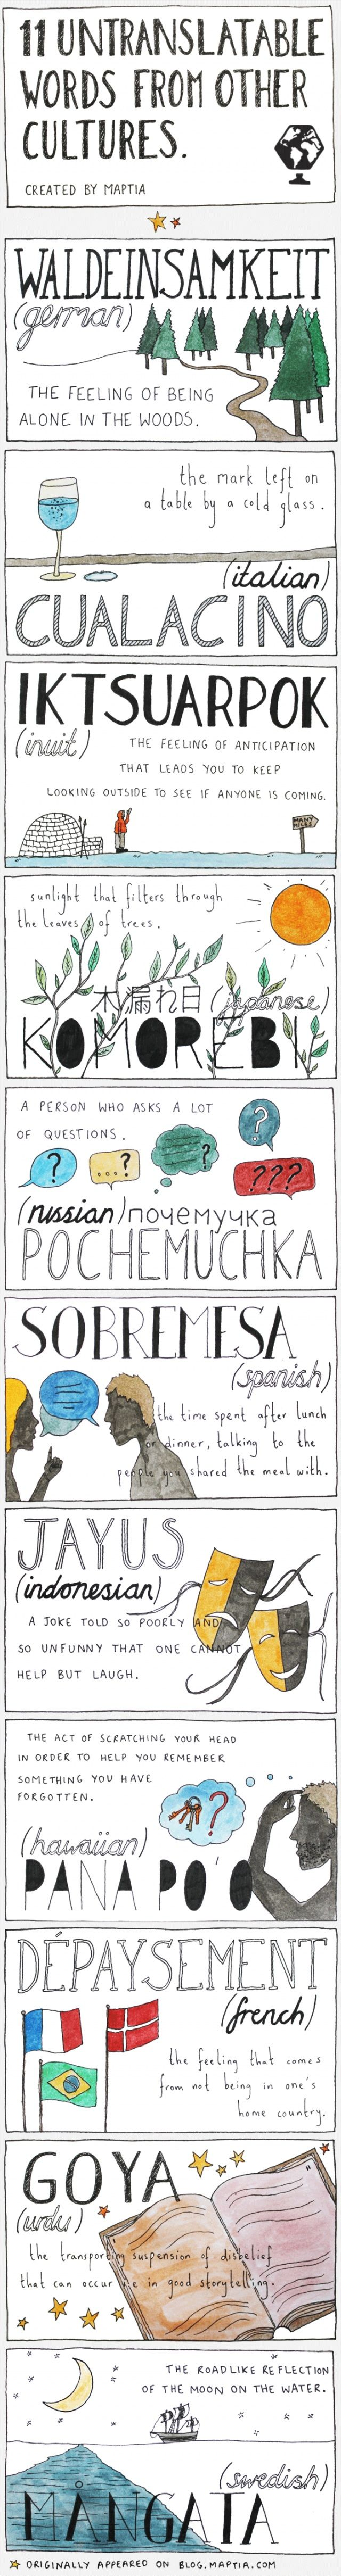 Untranslatebel words (?) for example: Sombremsa: the time spent talking after a meal